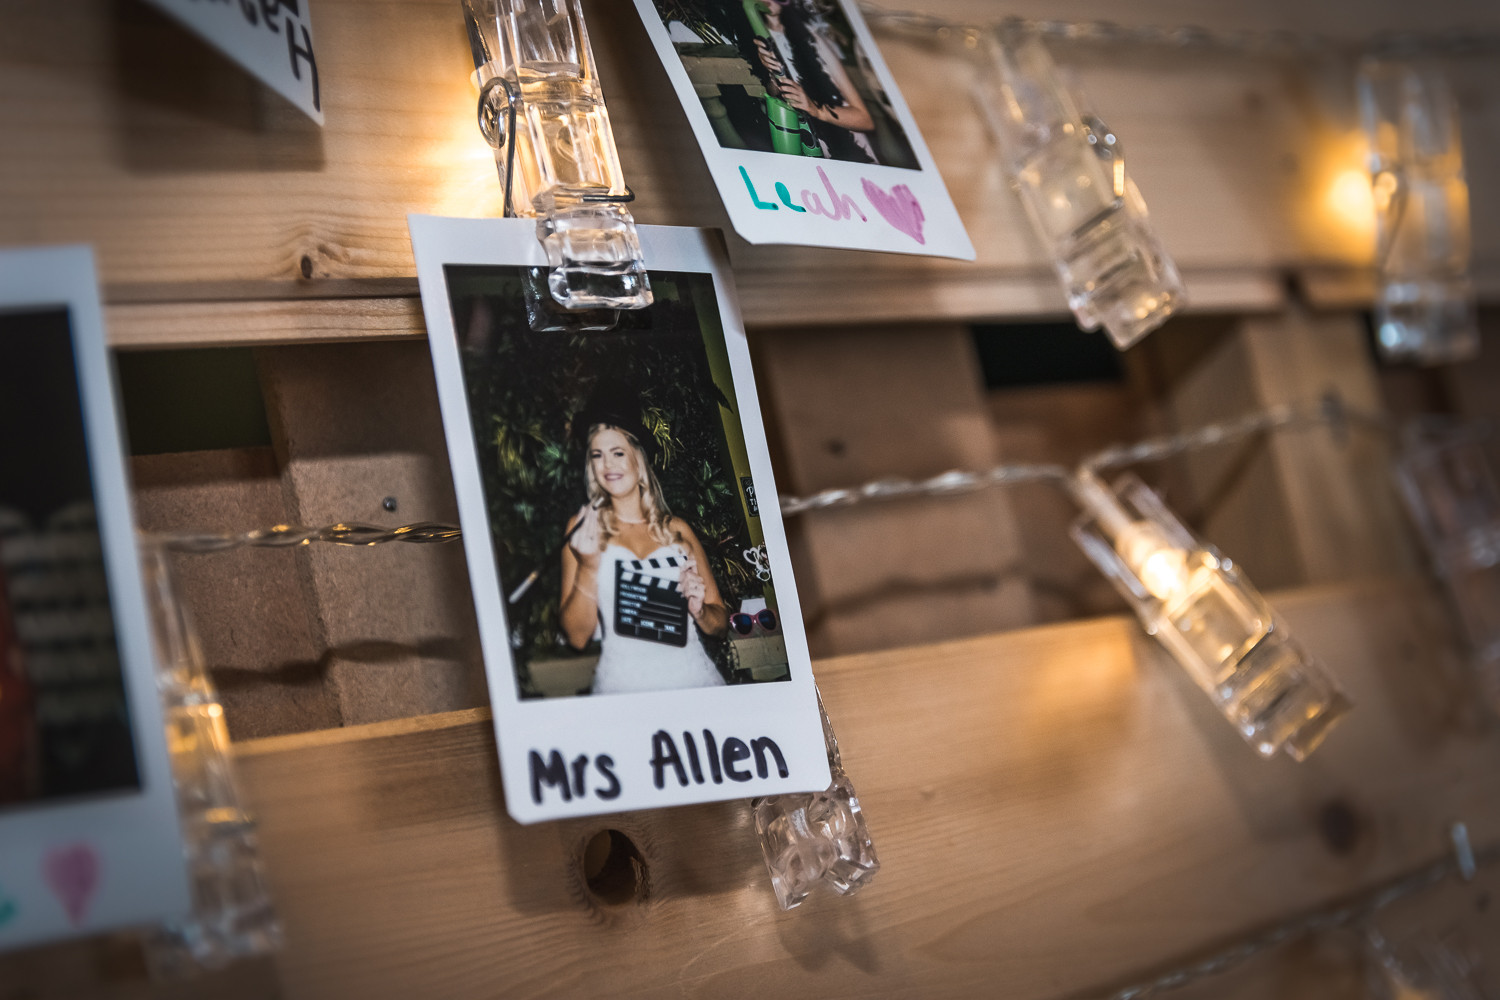 Personalised decorations at a wedding reception at The Potting Shed, Beverley.